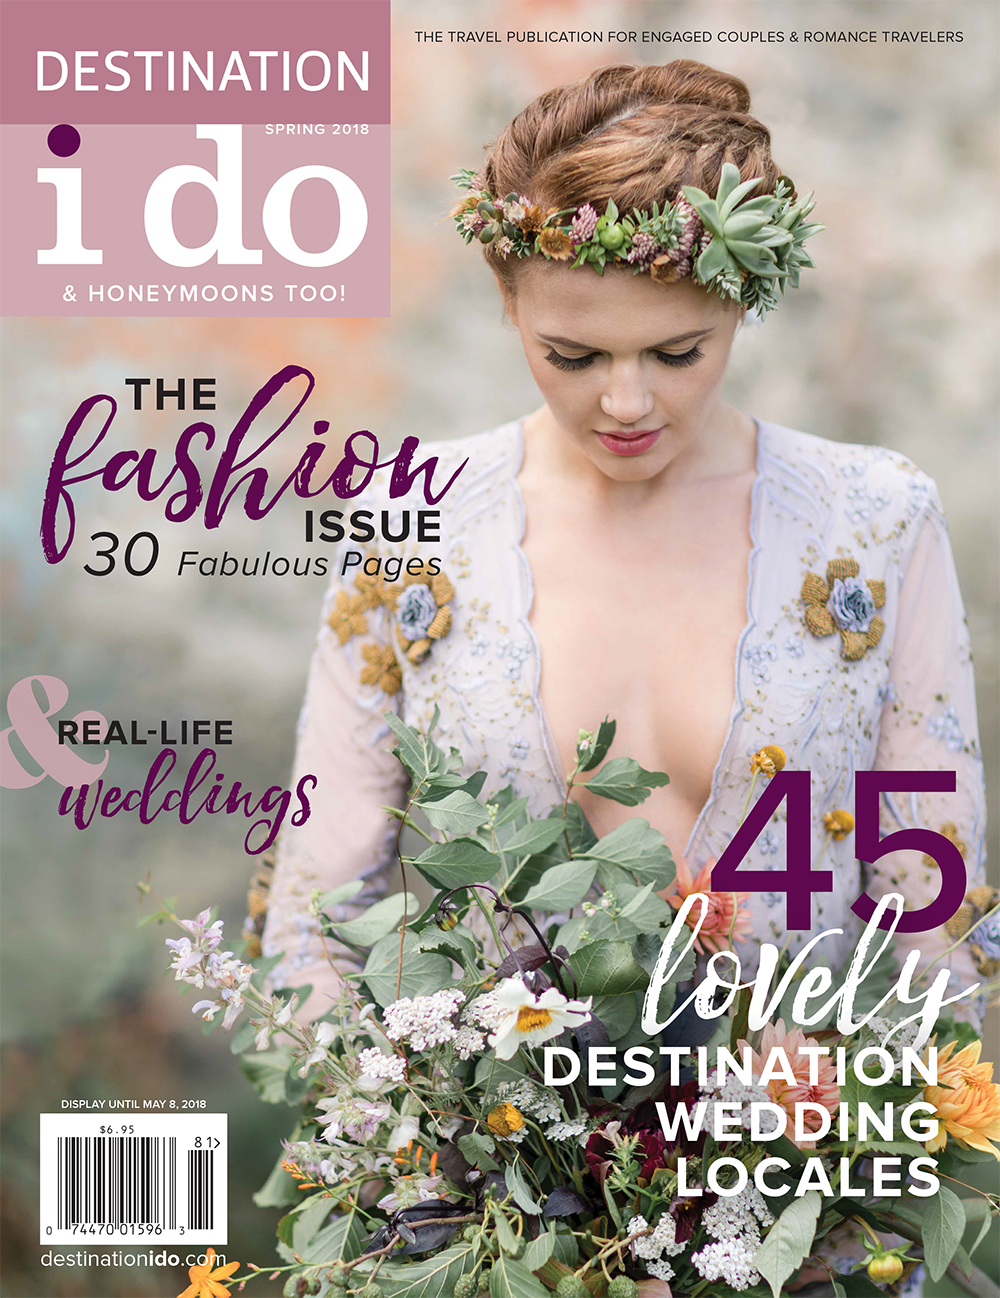 Destination I do magazine cover featuring a Scotland wedding on the Isle of Skye by Destination wedding planner, Mango Muse Events